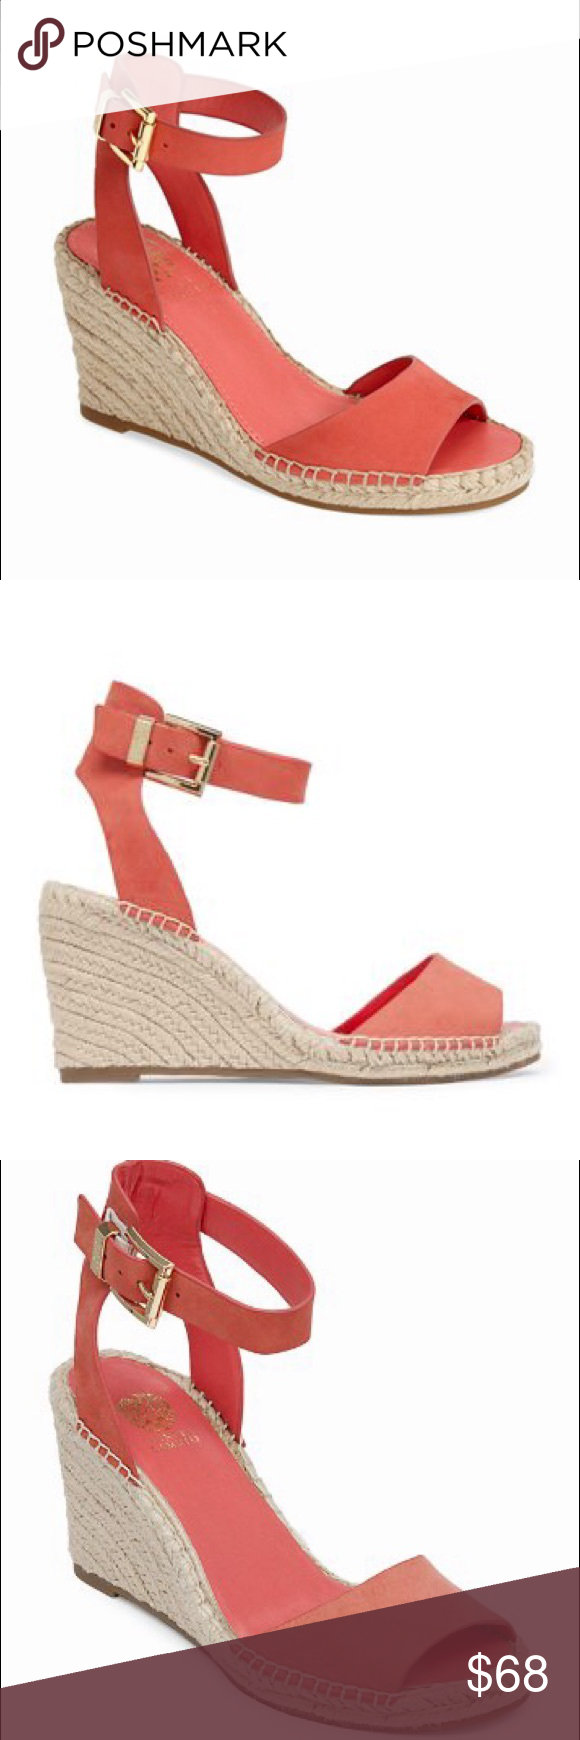 """ce9c2620088 NWOB Vince Camuto """"Tagger"""" Espadrille Sandal 8 New without box Vince Camuto  """"Tagger"""